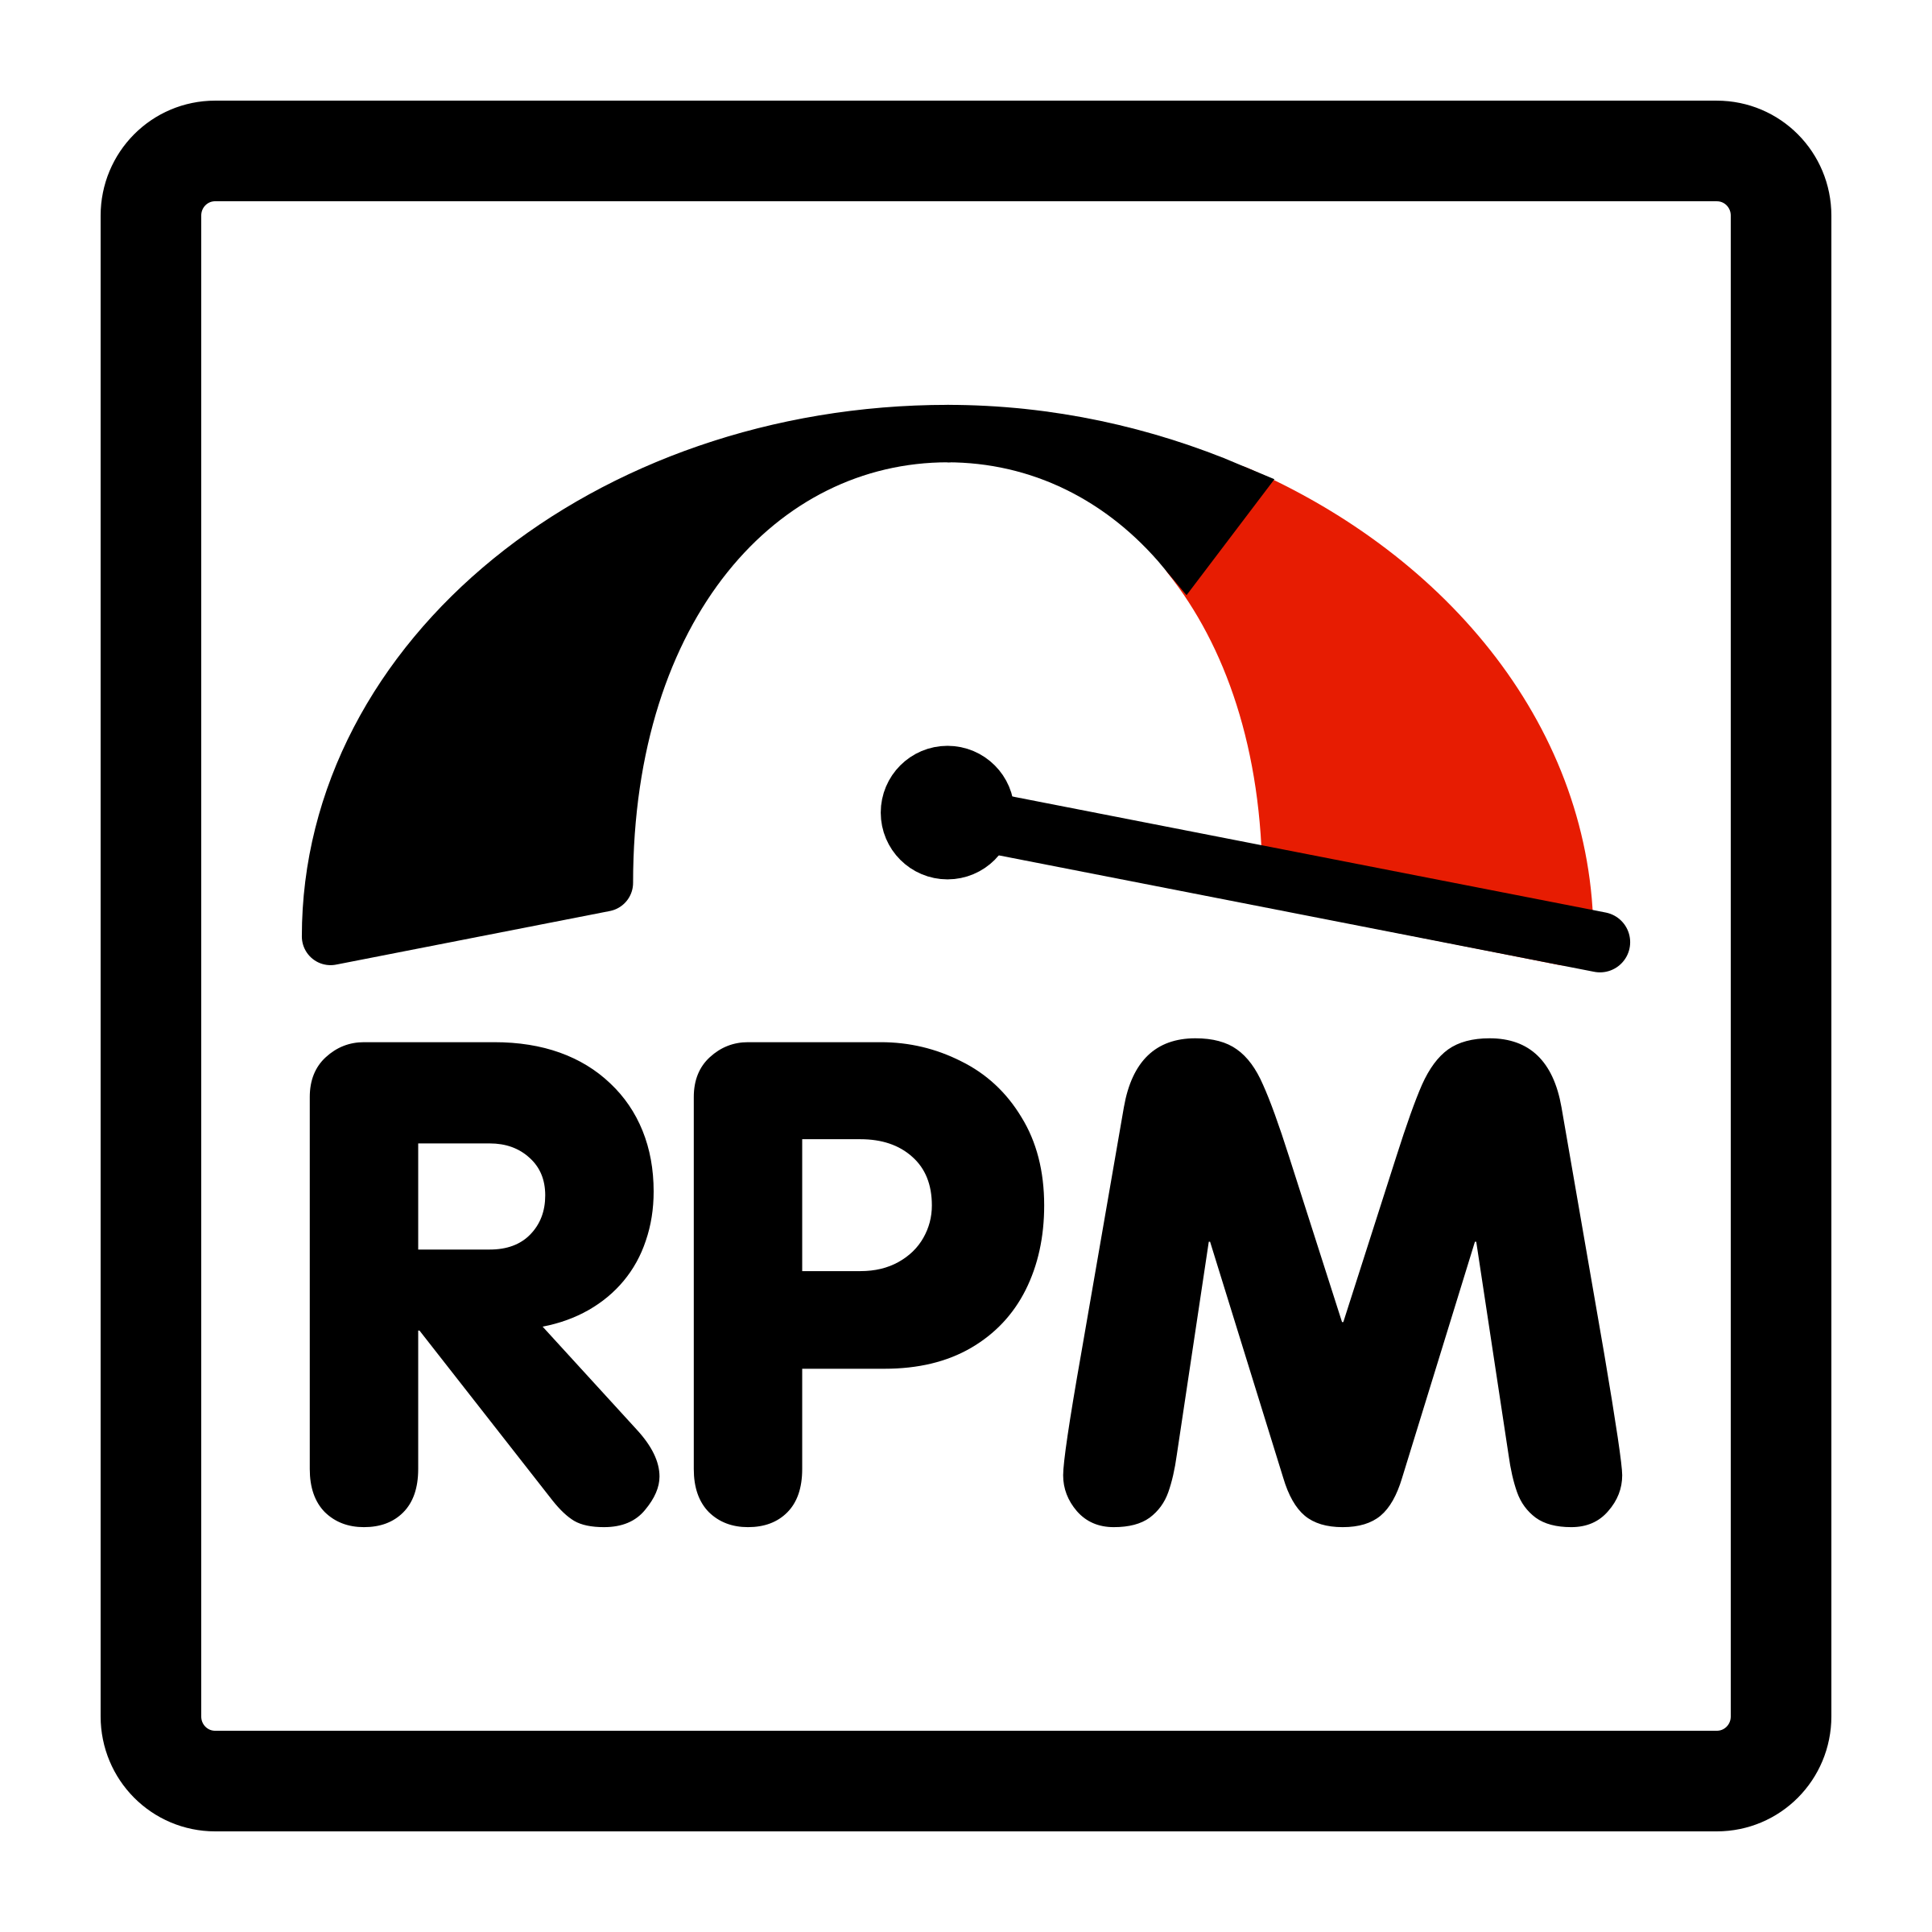 primary rpm by dannya